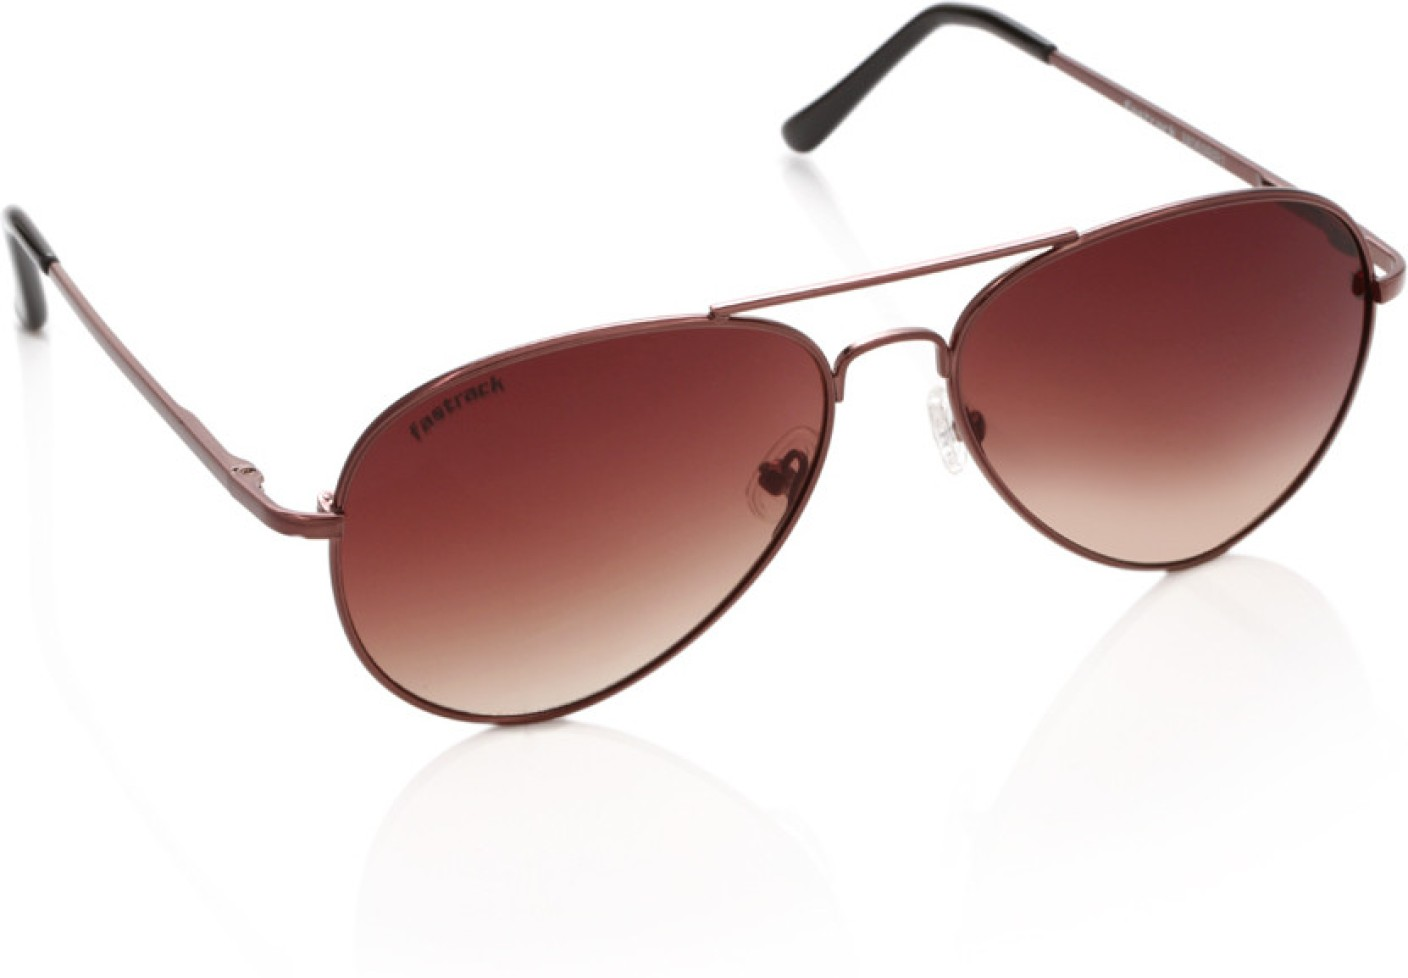 3bbc5a9baccb Buy Fastrack Aviator Sunglasses Brown For Men   Women Online   Best Prices  in India